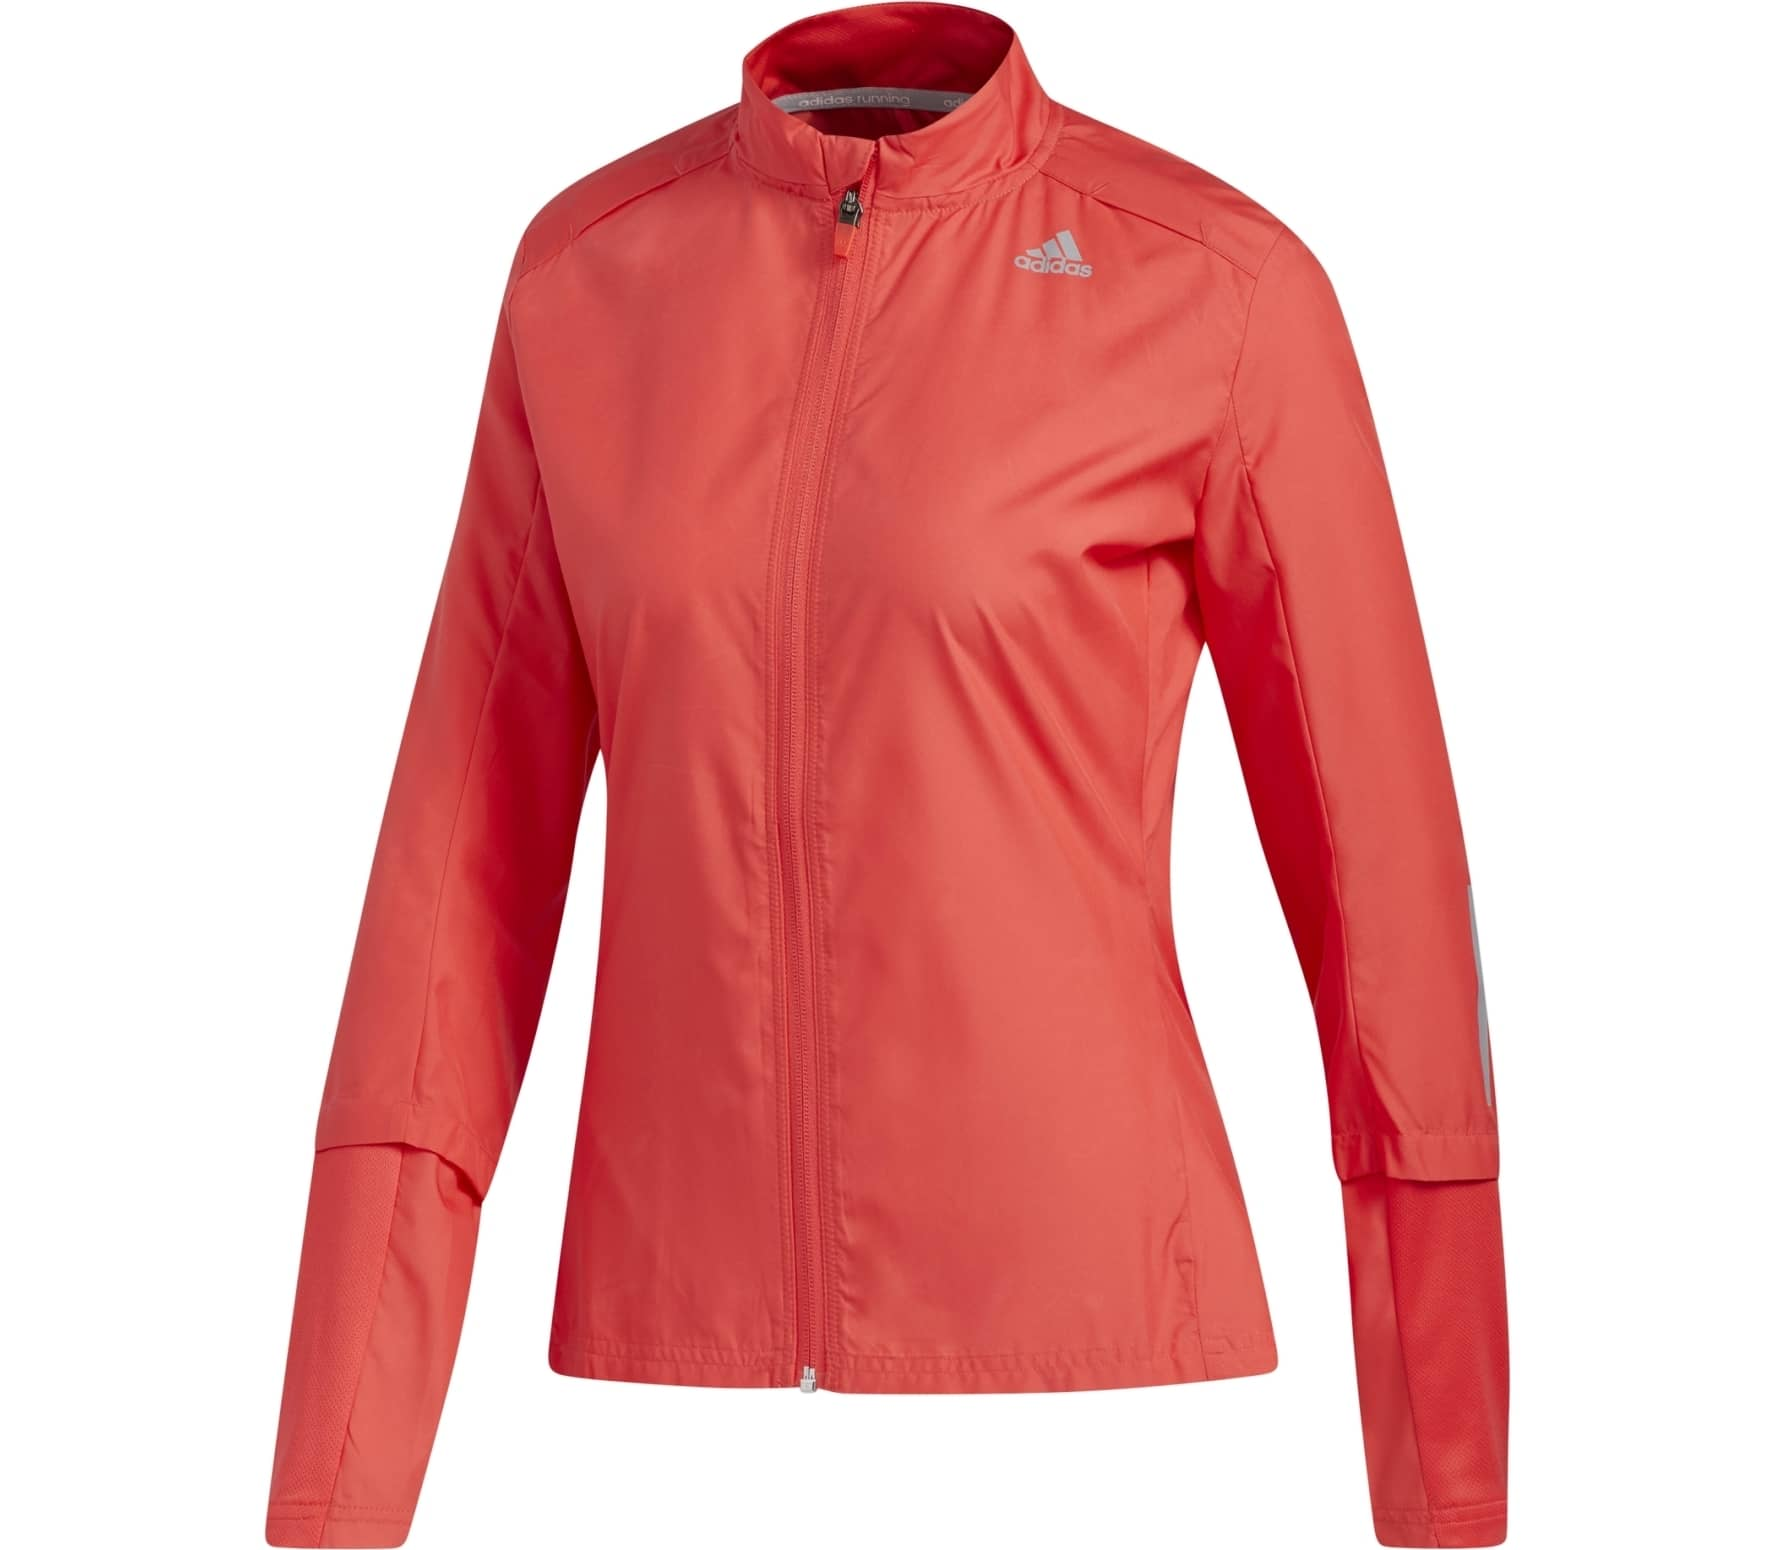 Adidas - Response Wind women's running jacket (red) - XS thumbnail